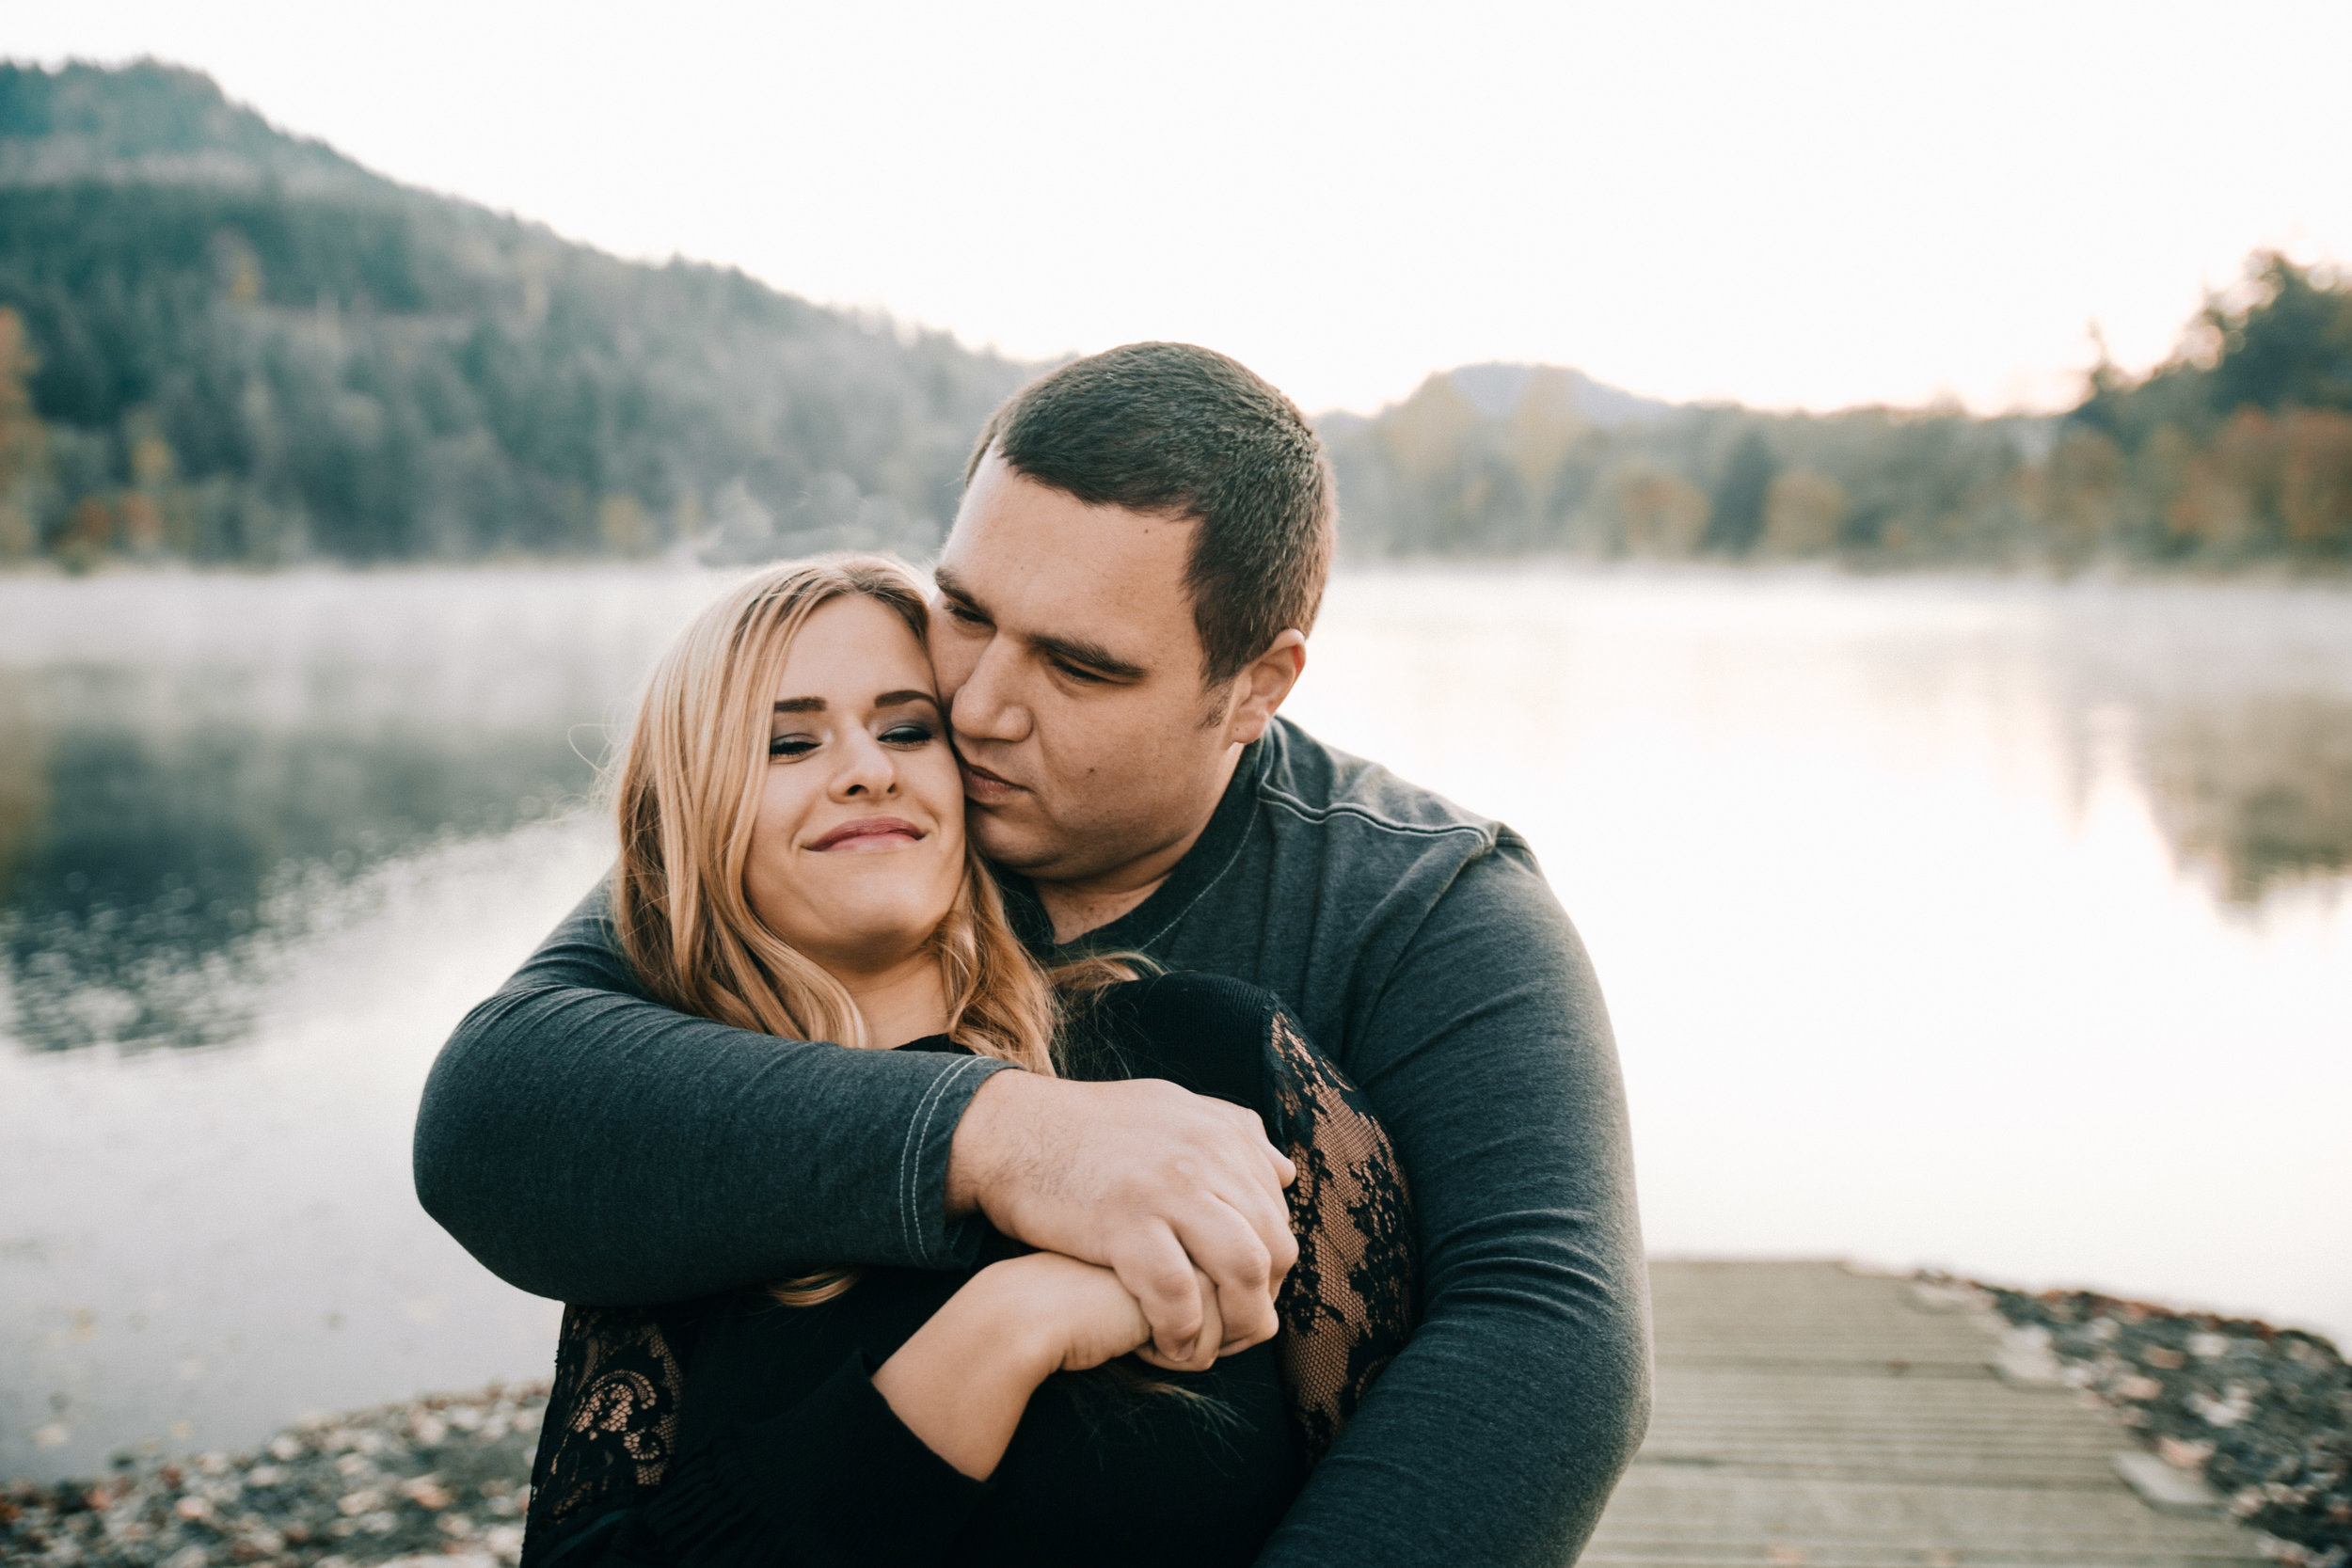 David + Angie | Kress Lake | Highlights | Annie Zav Photography | Anastasiya Zavrazhina | Highlights |1.jpg